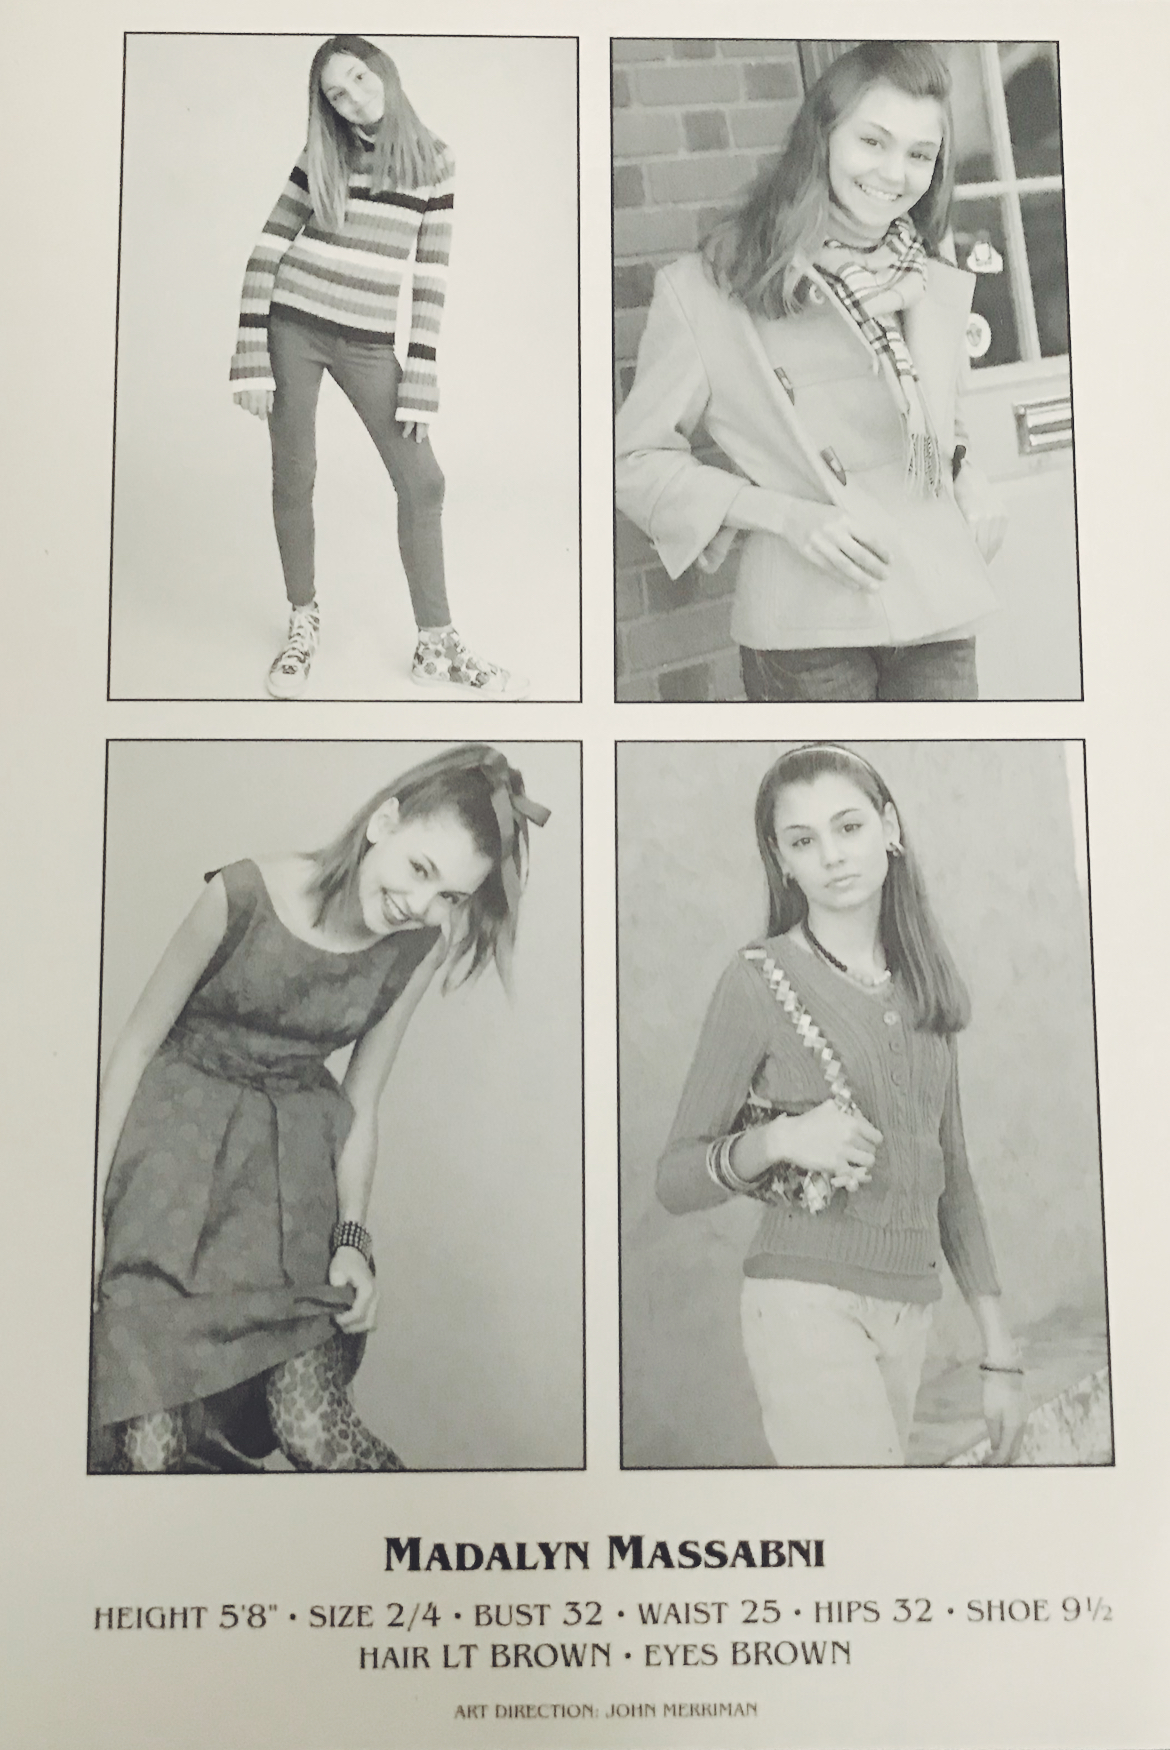 Maddy's modeling work (early years)